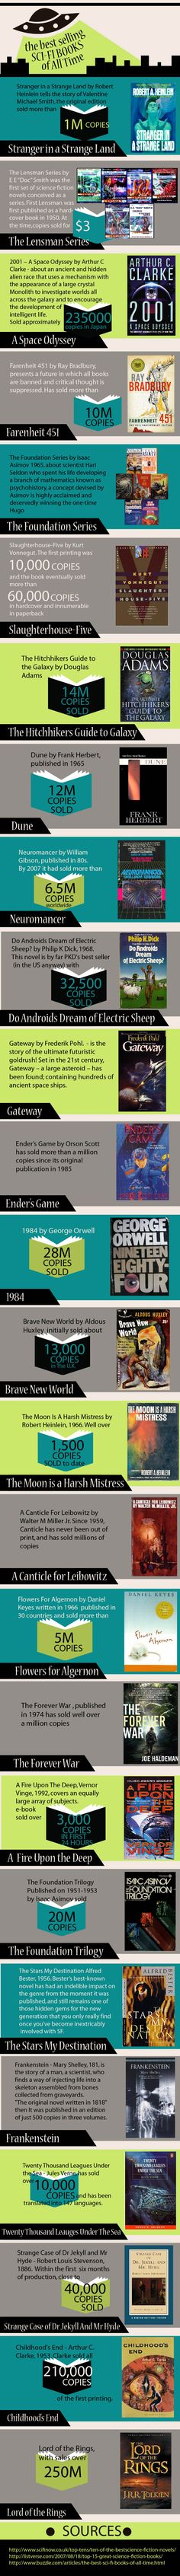 The more I look at this the more I'm convinced some of the stats are wrong or typos. // The best selling sci-fi books of all time (infographic).